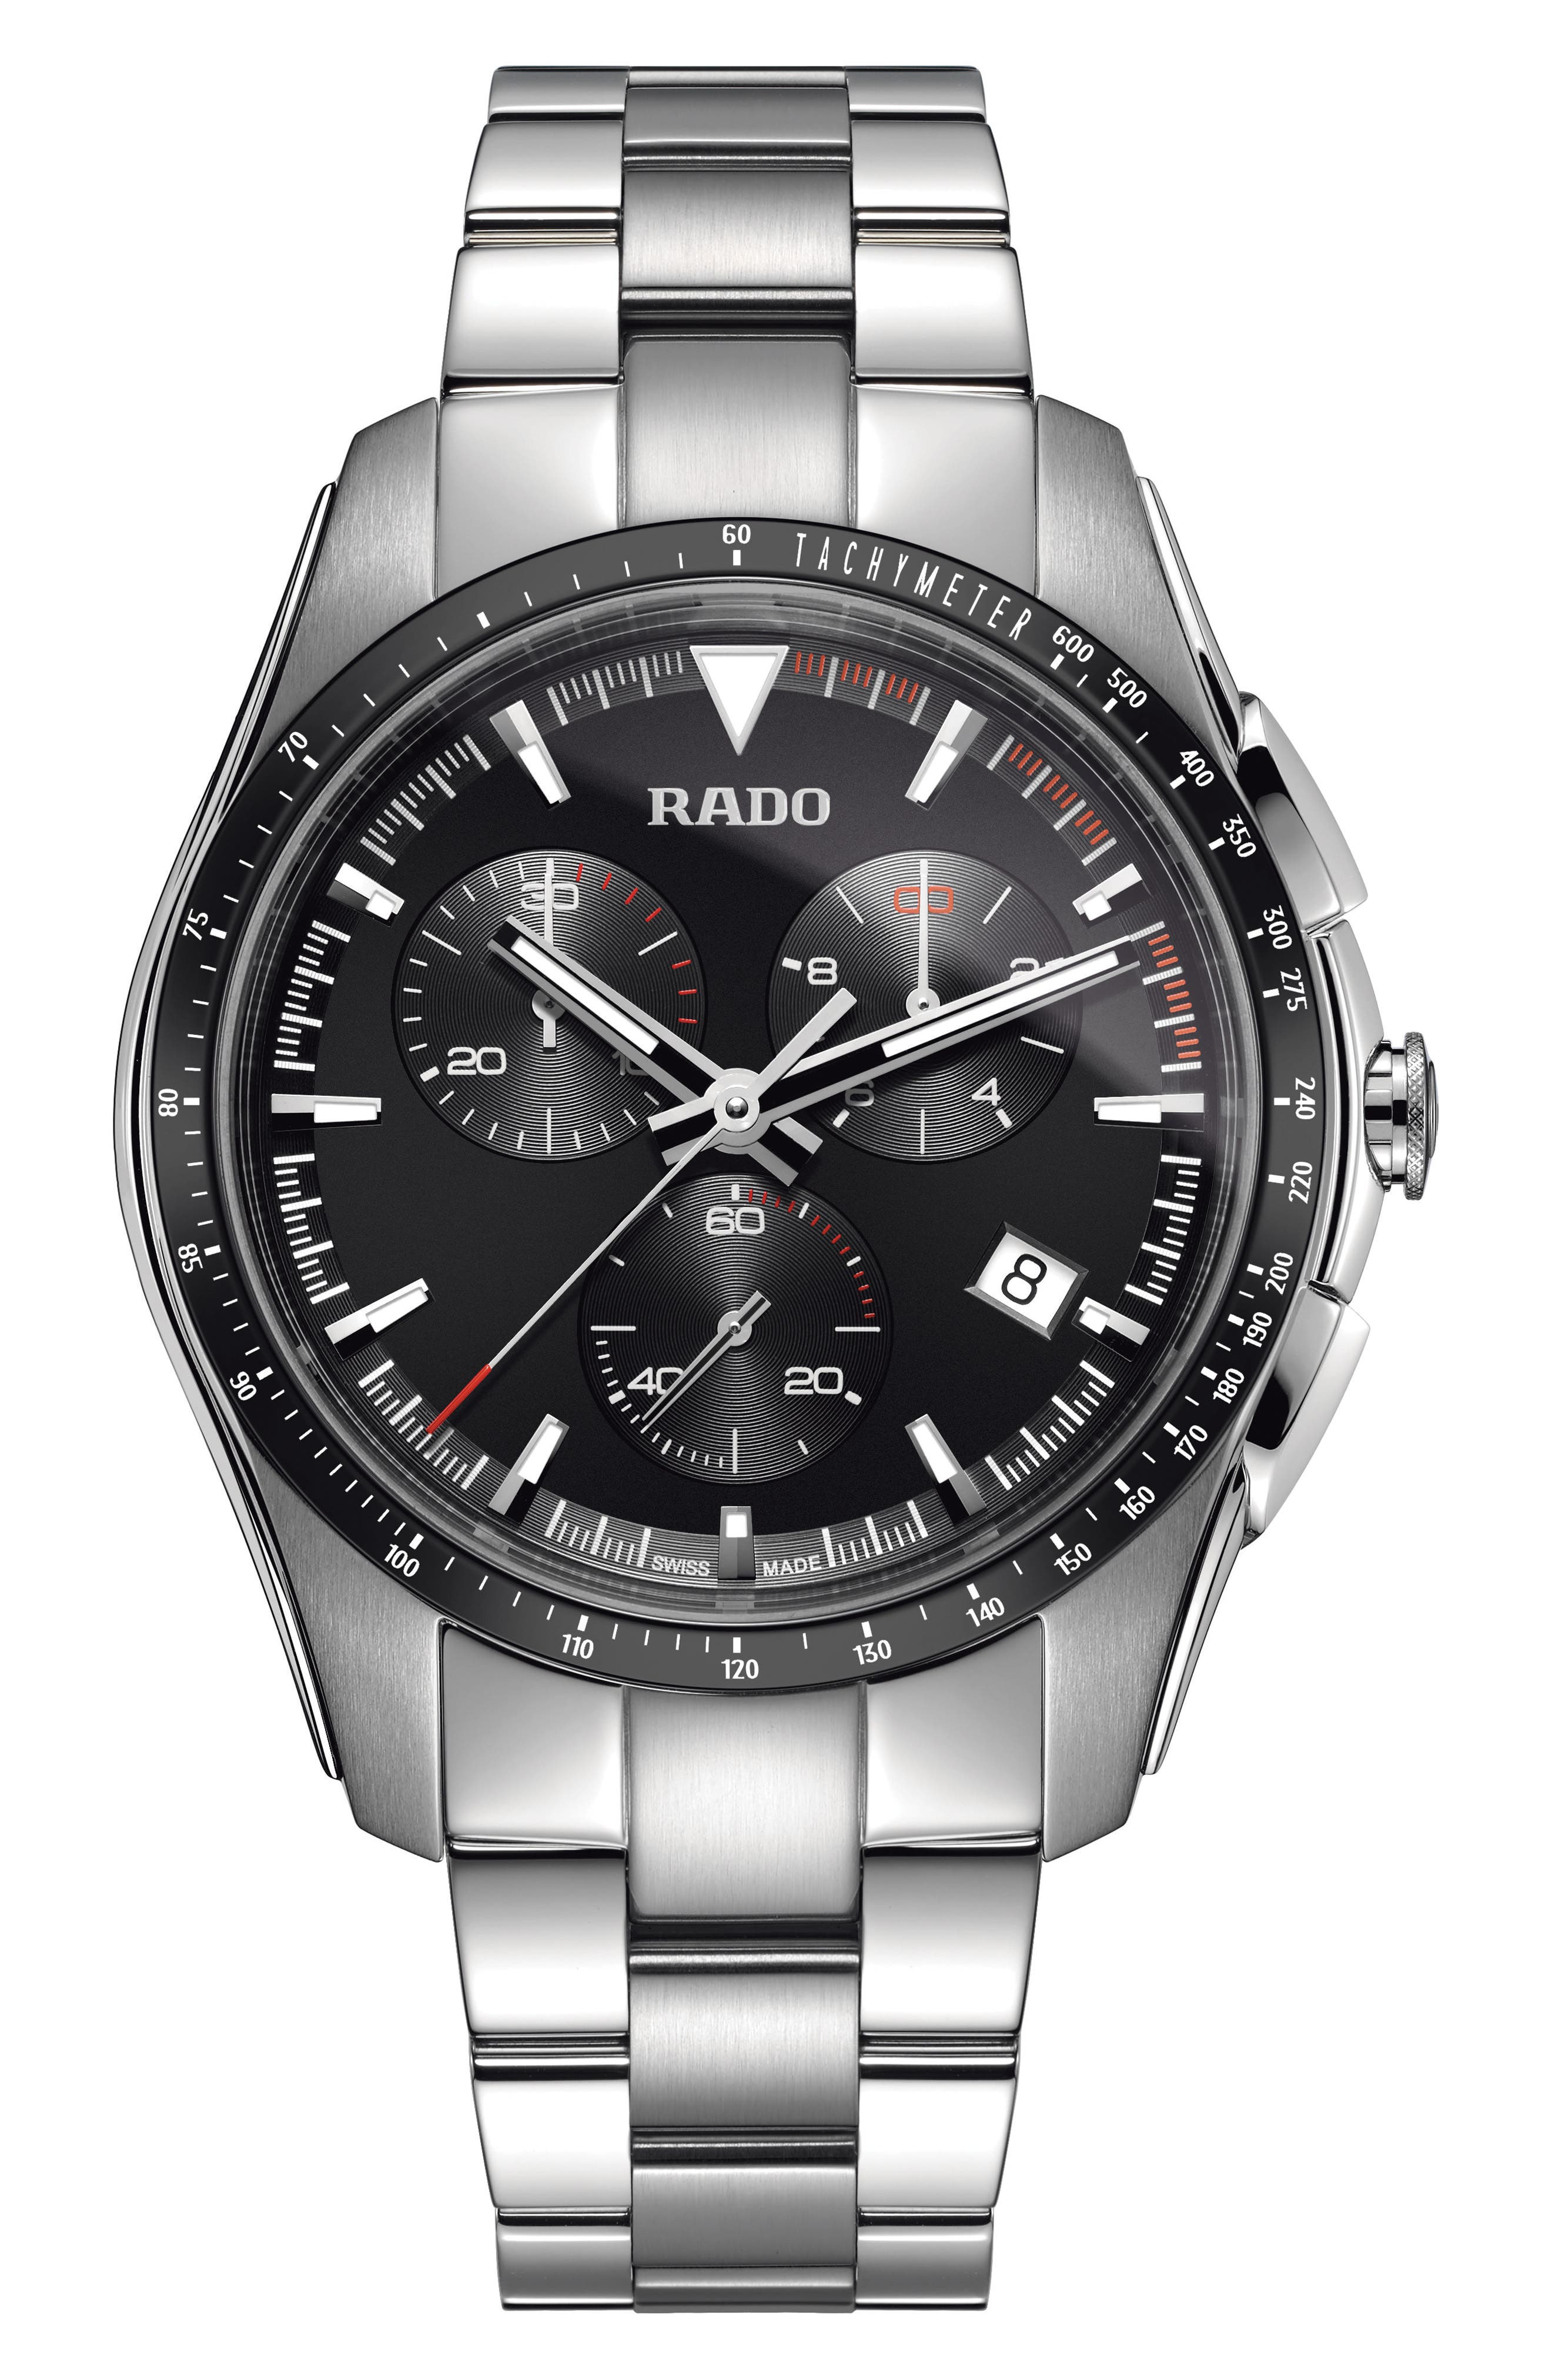 Main Image - RADO HyperChrome Chronograph Bracelet Watch, 45mm